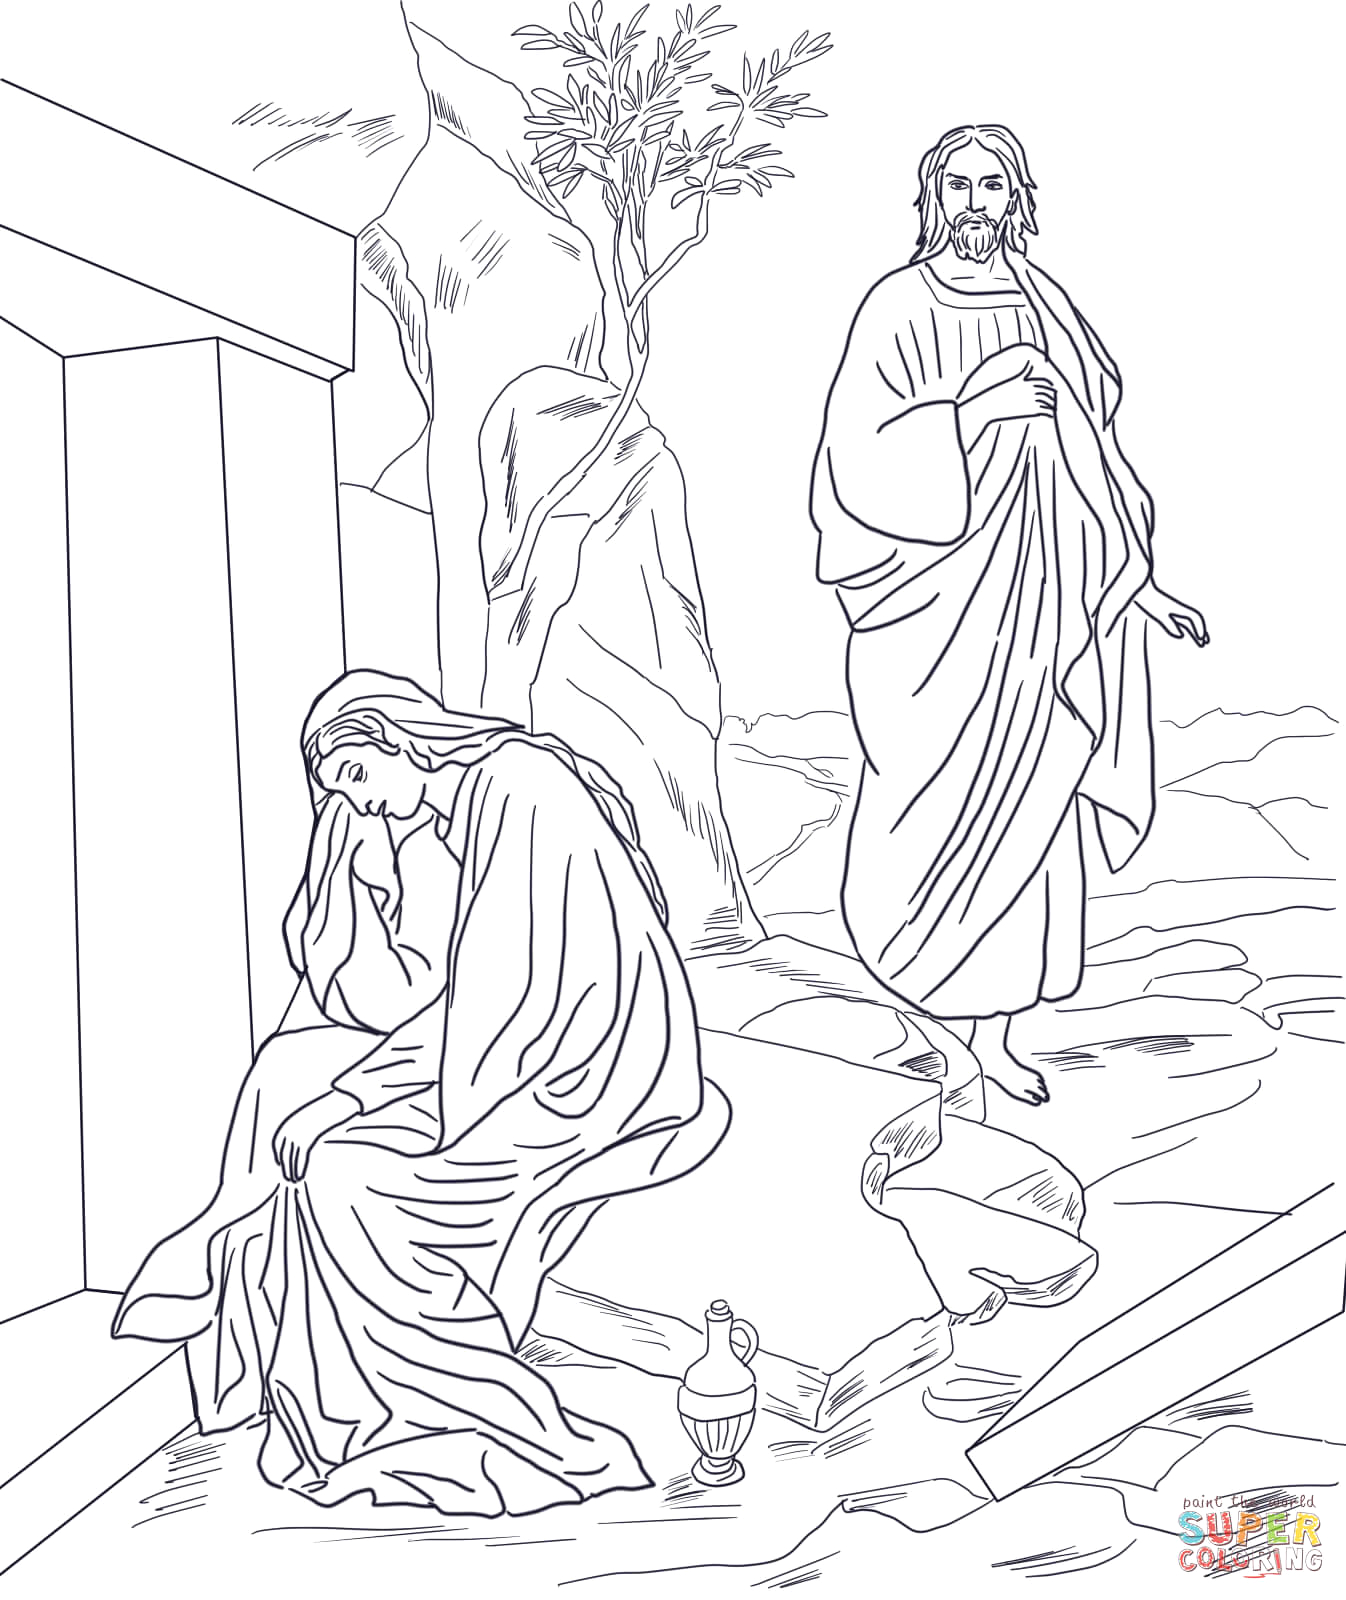 Jesus Appears to Mary Magdalene Coloring Page Jesus Appears to Mary Magdalene after Resurrection